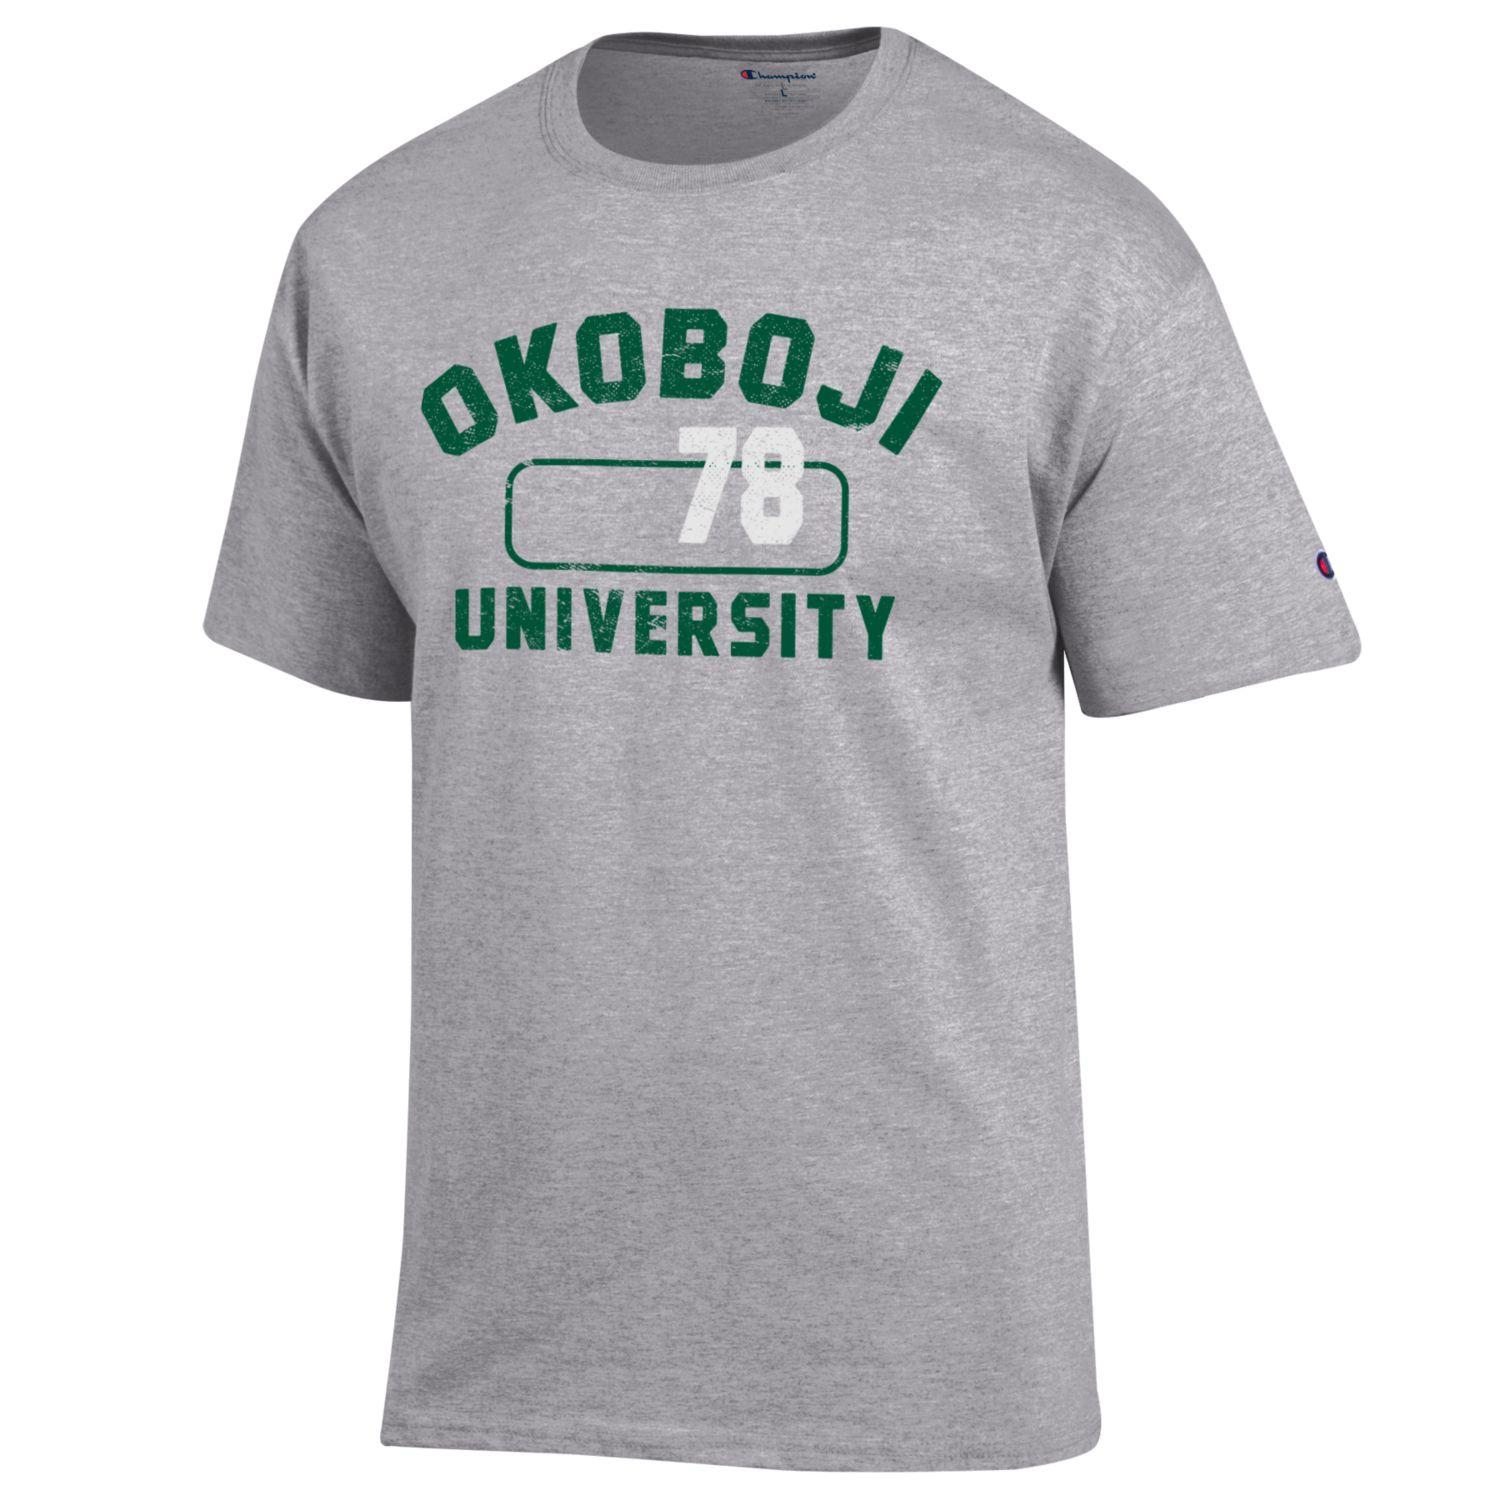 Okoboji University Gym Tee - Green Print